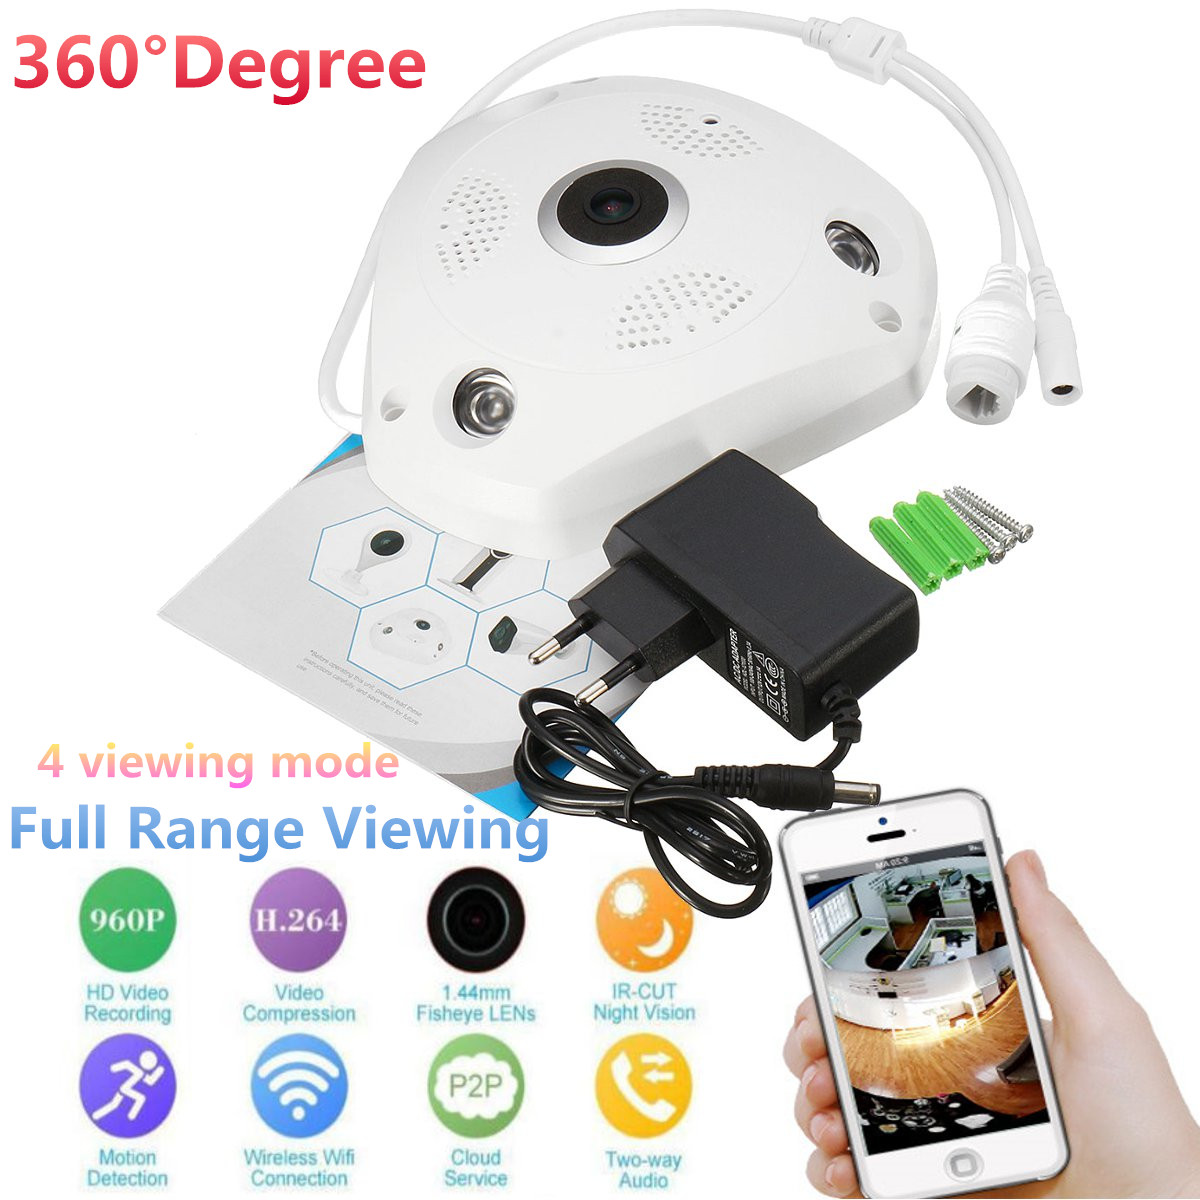 360° Panoramic View HD 960P Night Vision Wireless WiFi Camera CCTV Home Security Camera